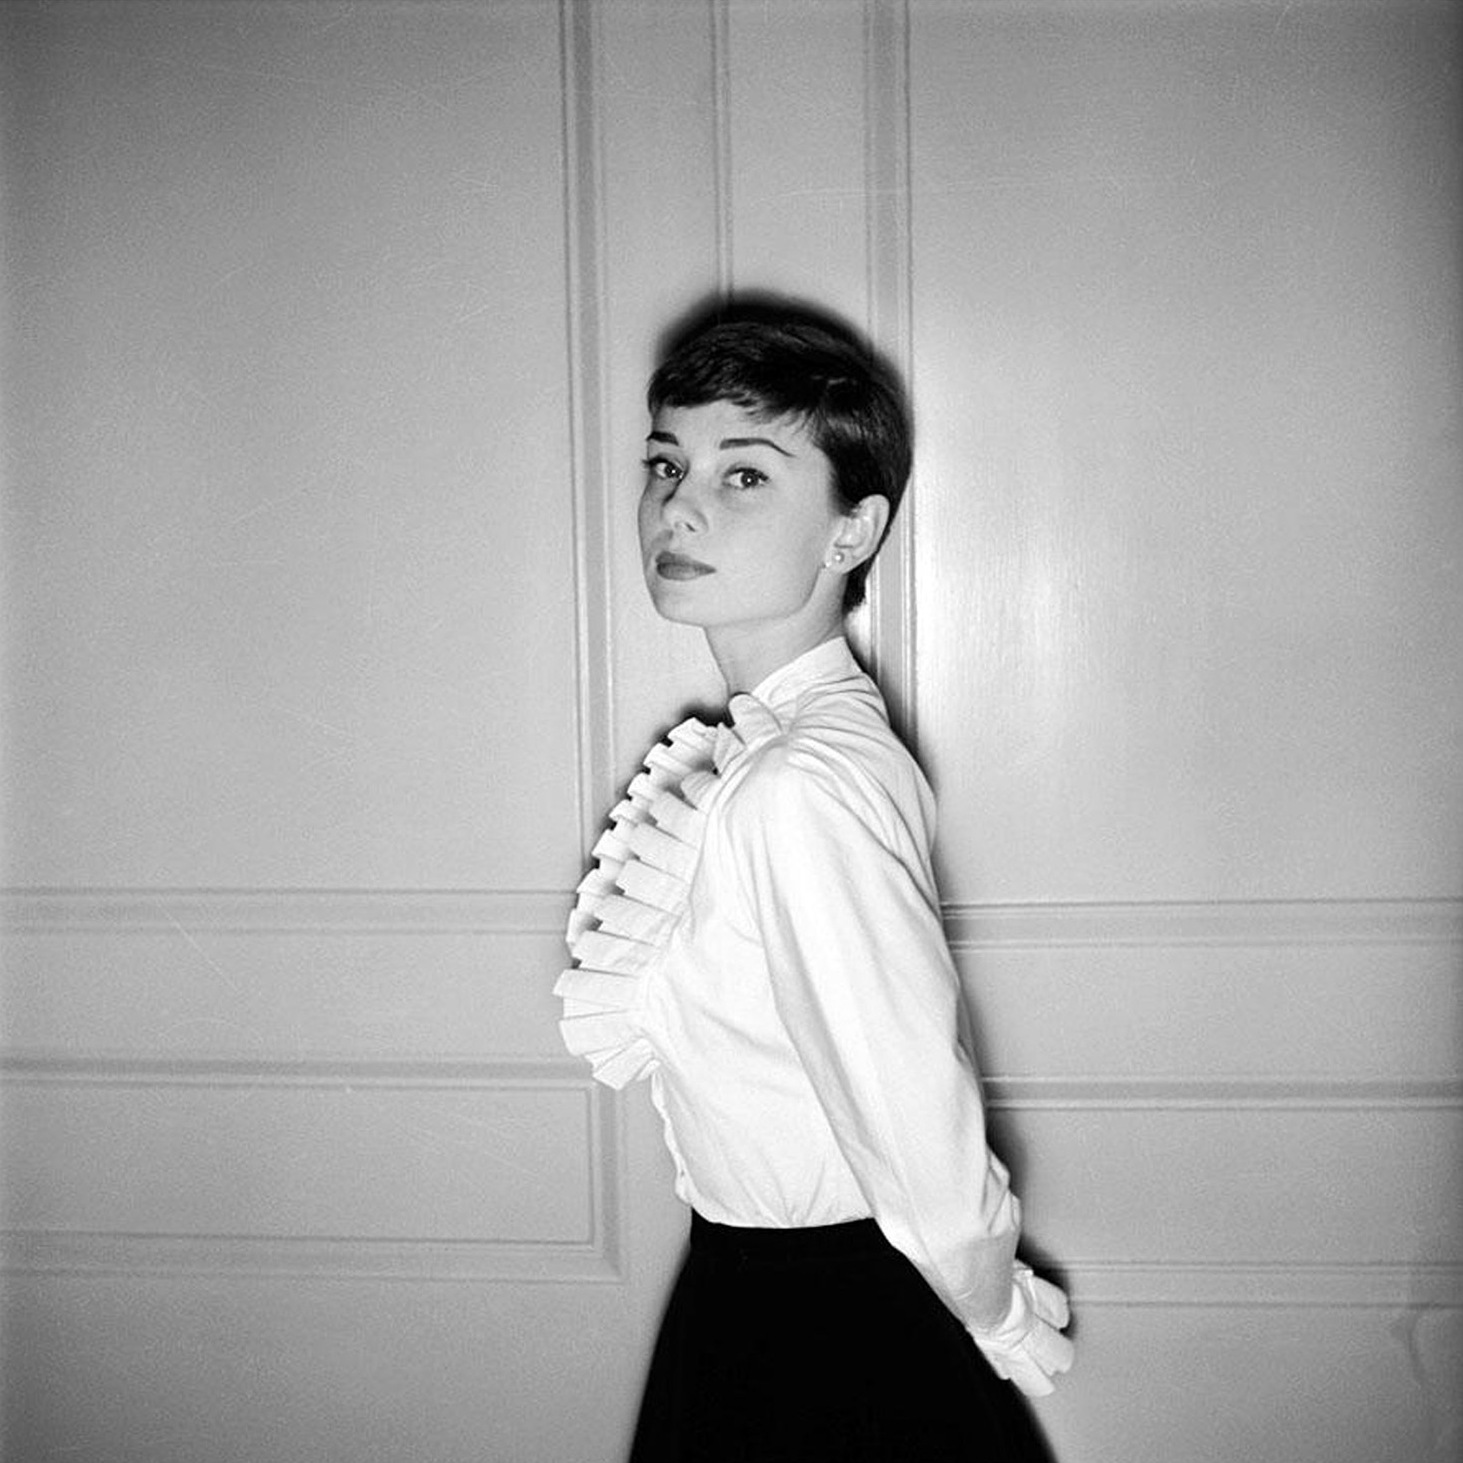 audrey-hepburn-photographed-by-cecil-beaton-in-london-england-in-1955.jpg